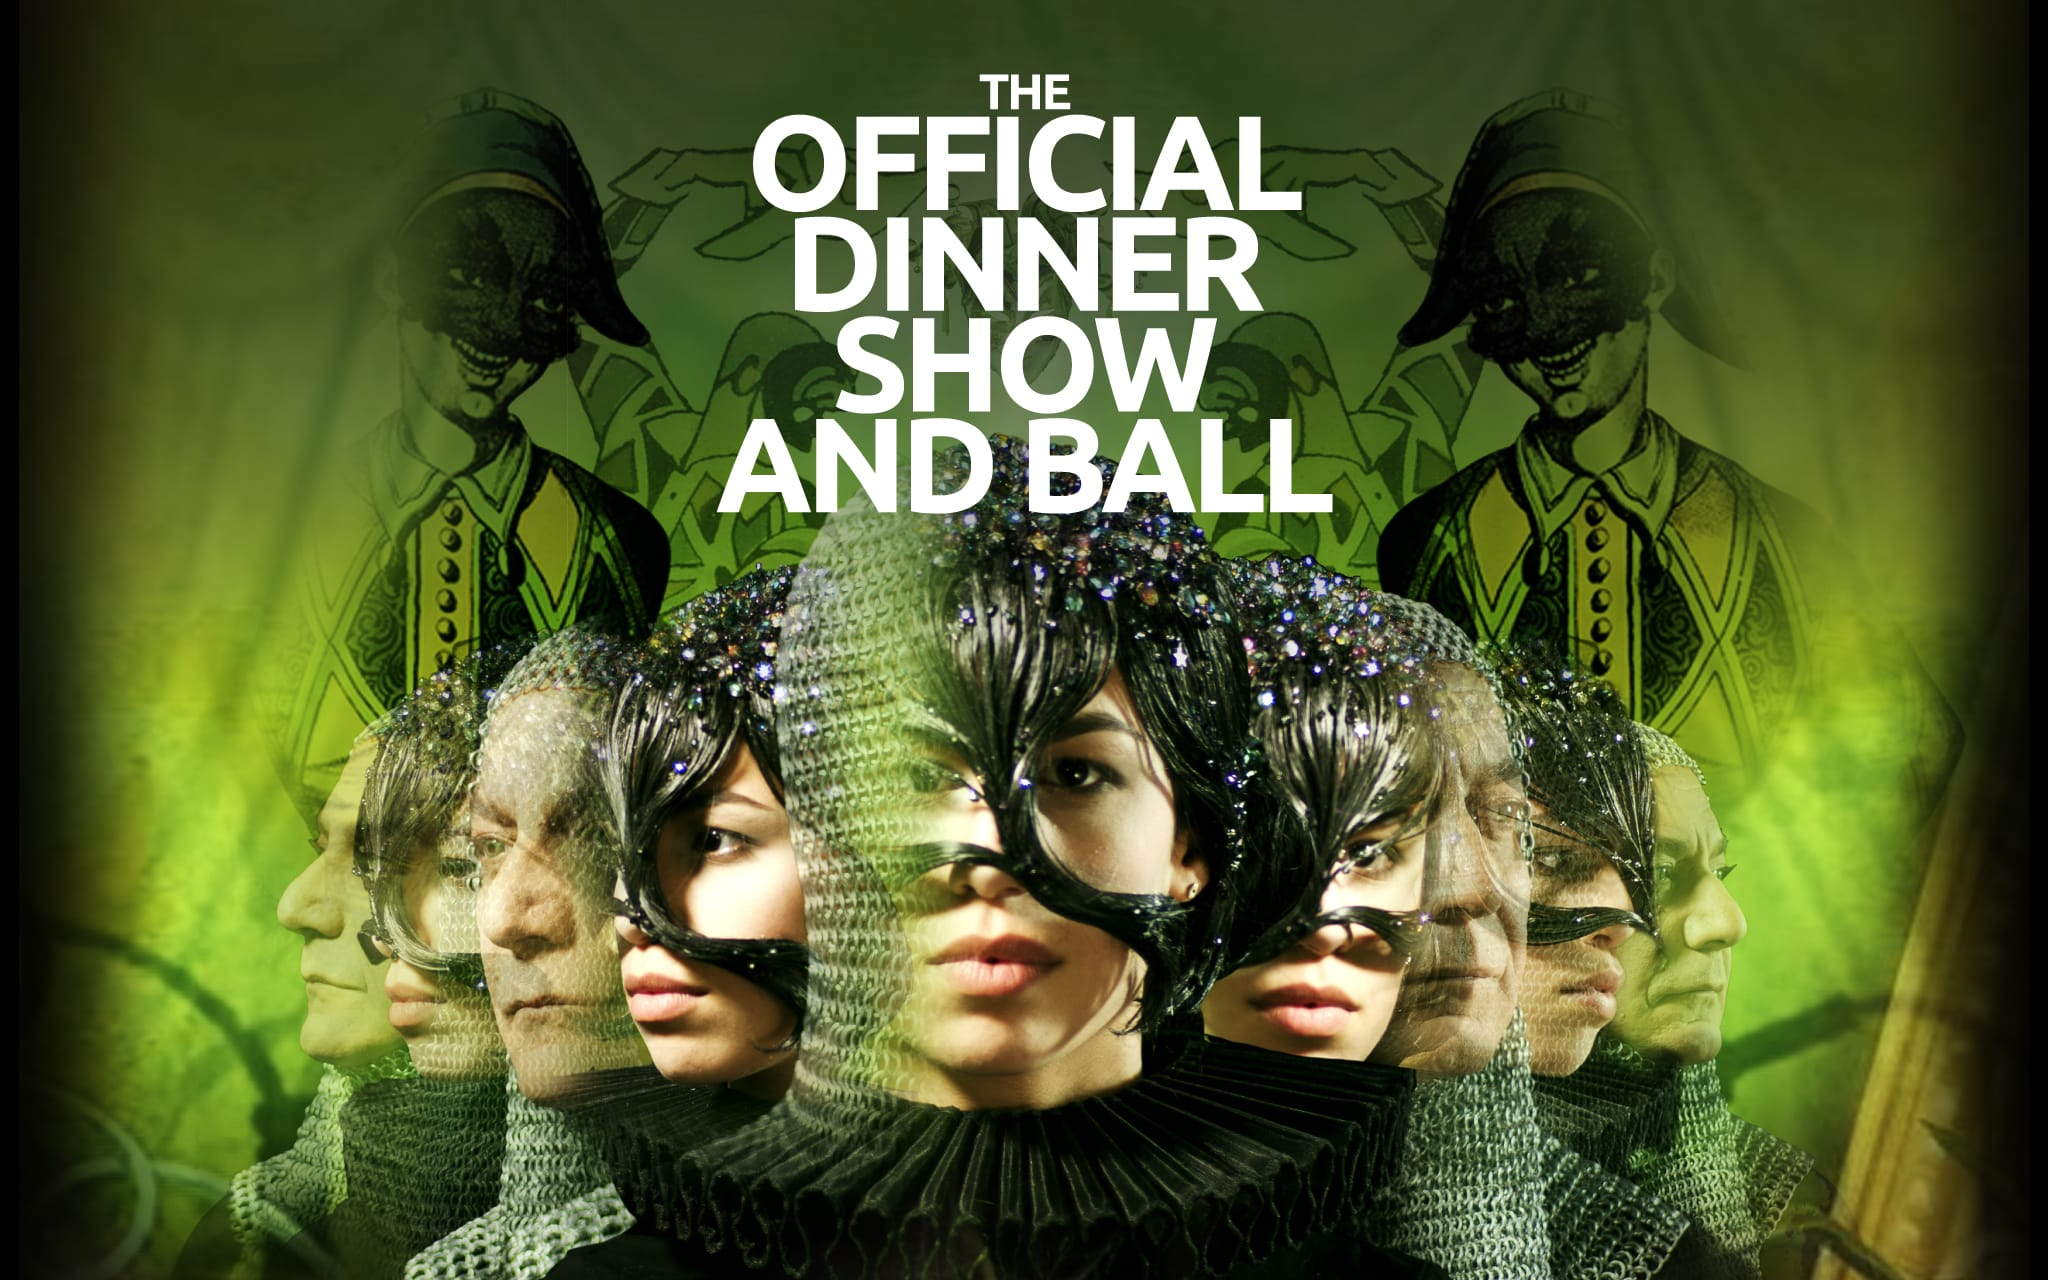 The Official Dinner Show and Ball carnevale venezia 2018